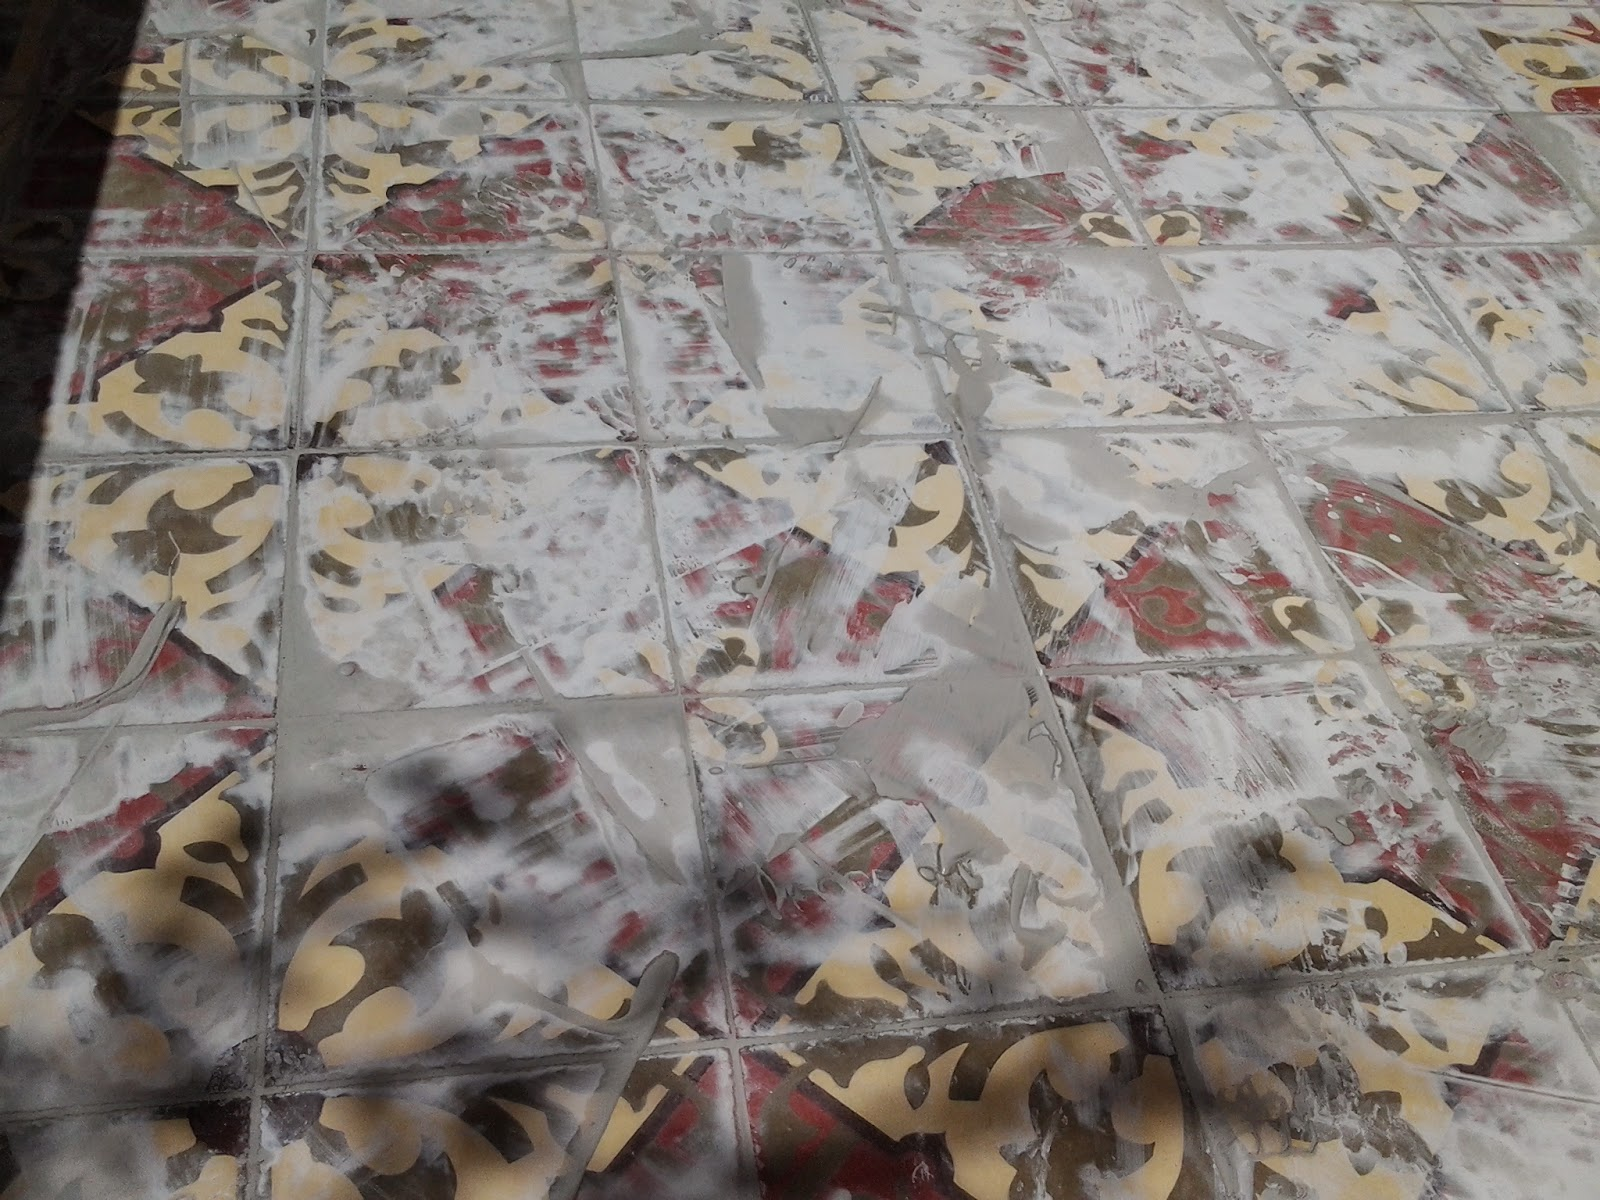 Grout being applied to patterned cement tiles  - a messy job!